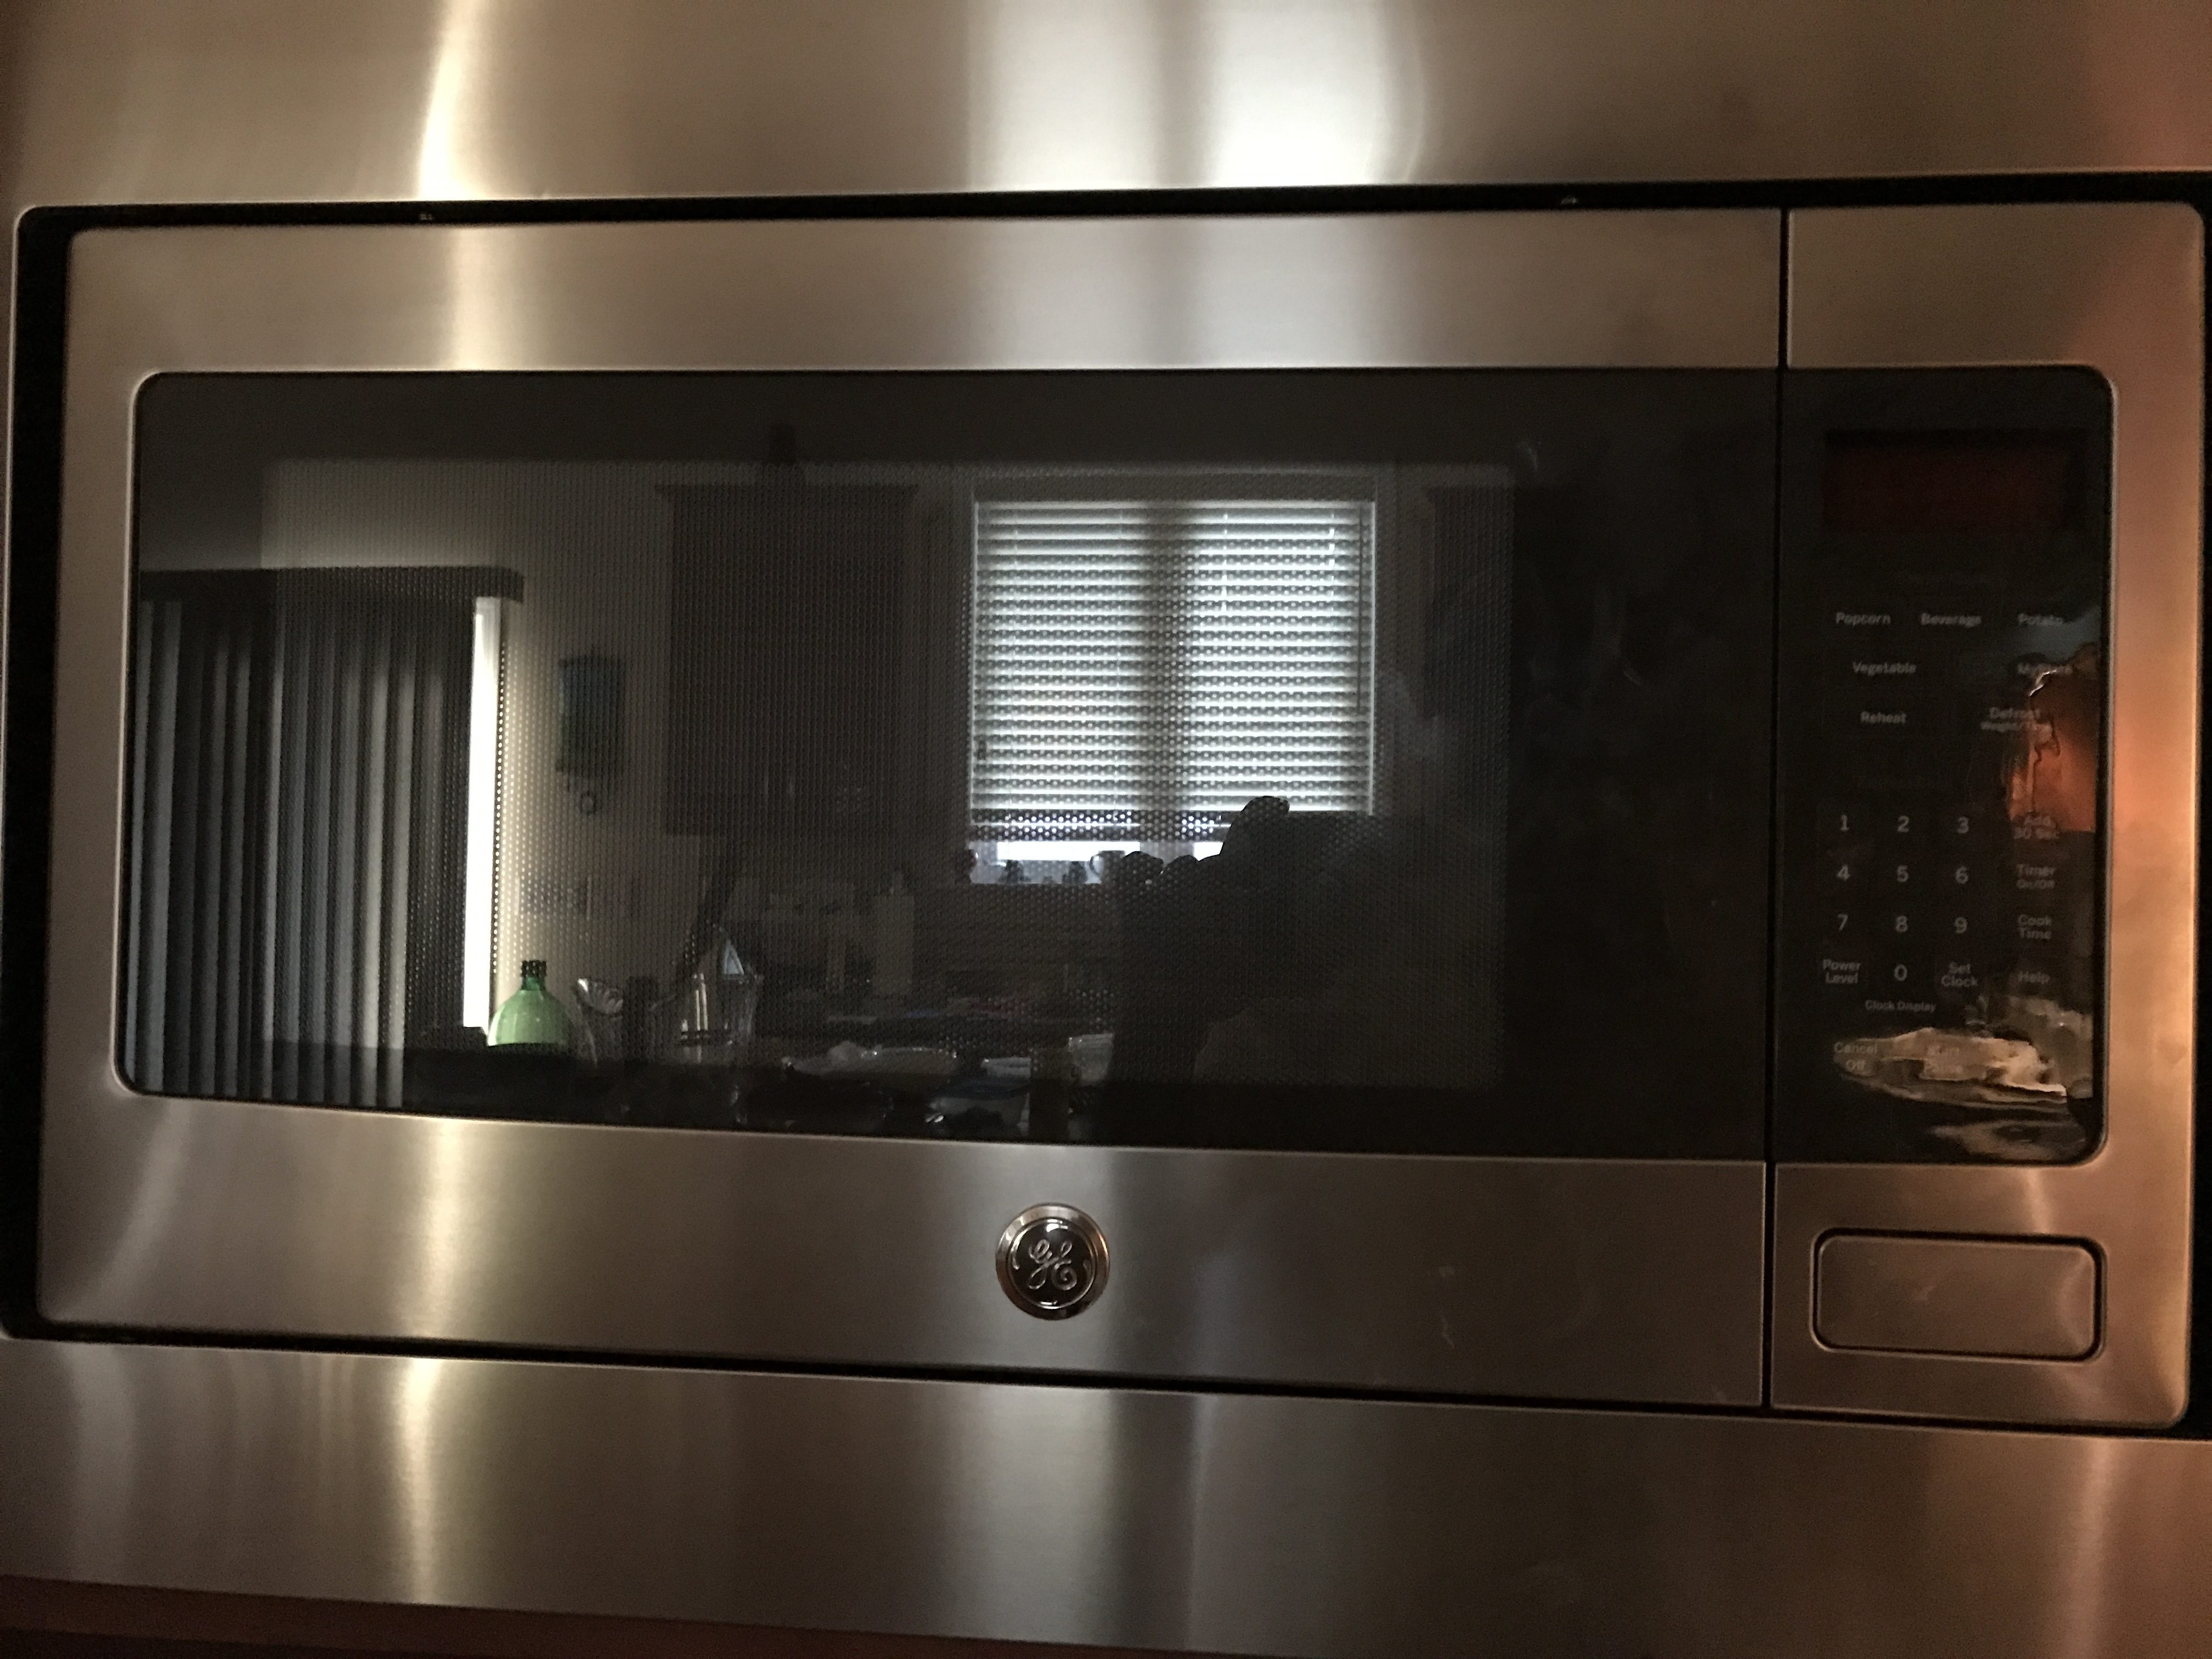 Top 54 Reviews And Complaints About Ge Wall Oven